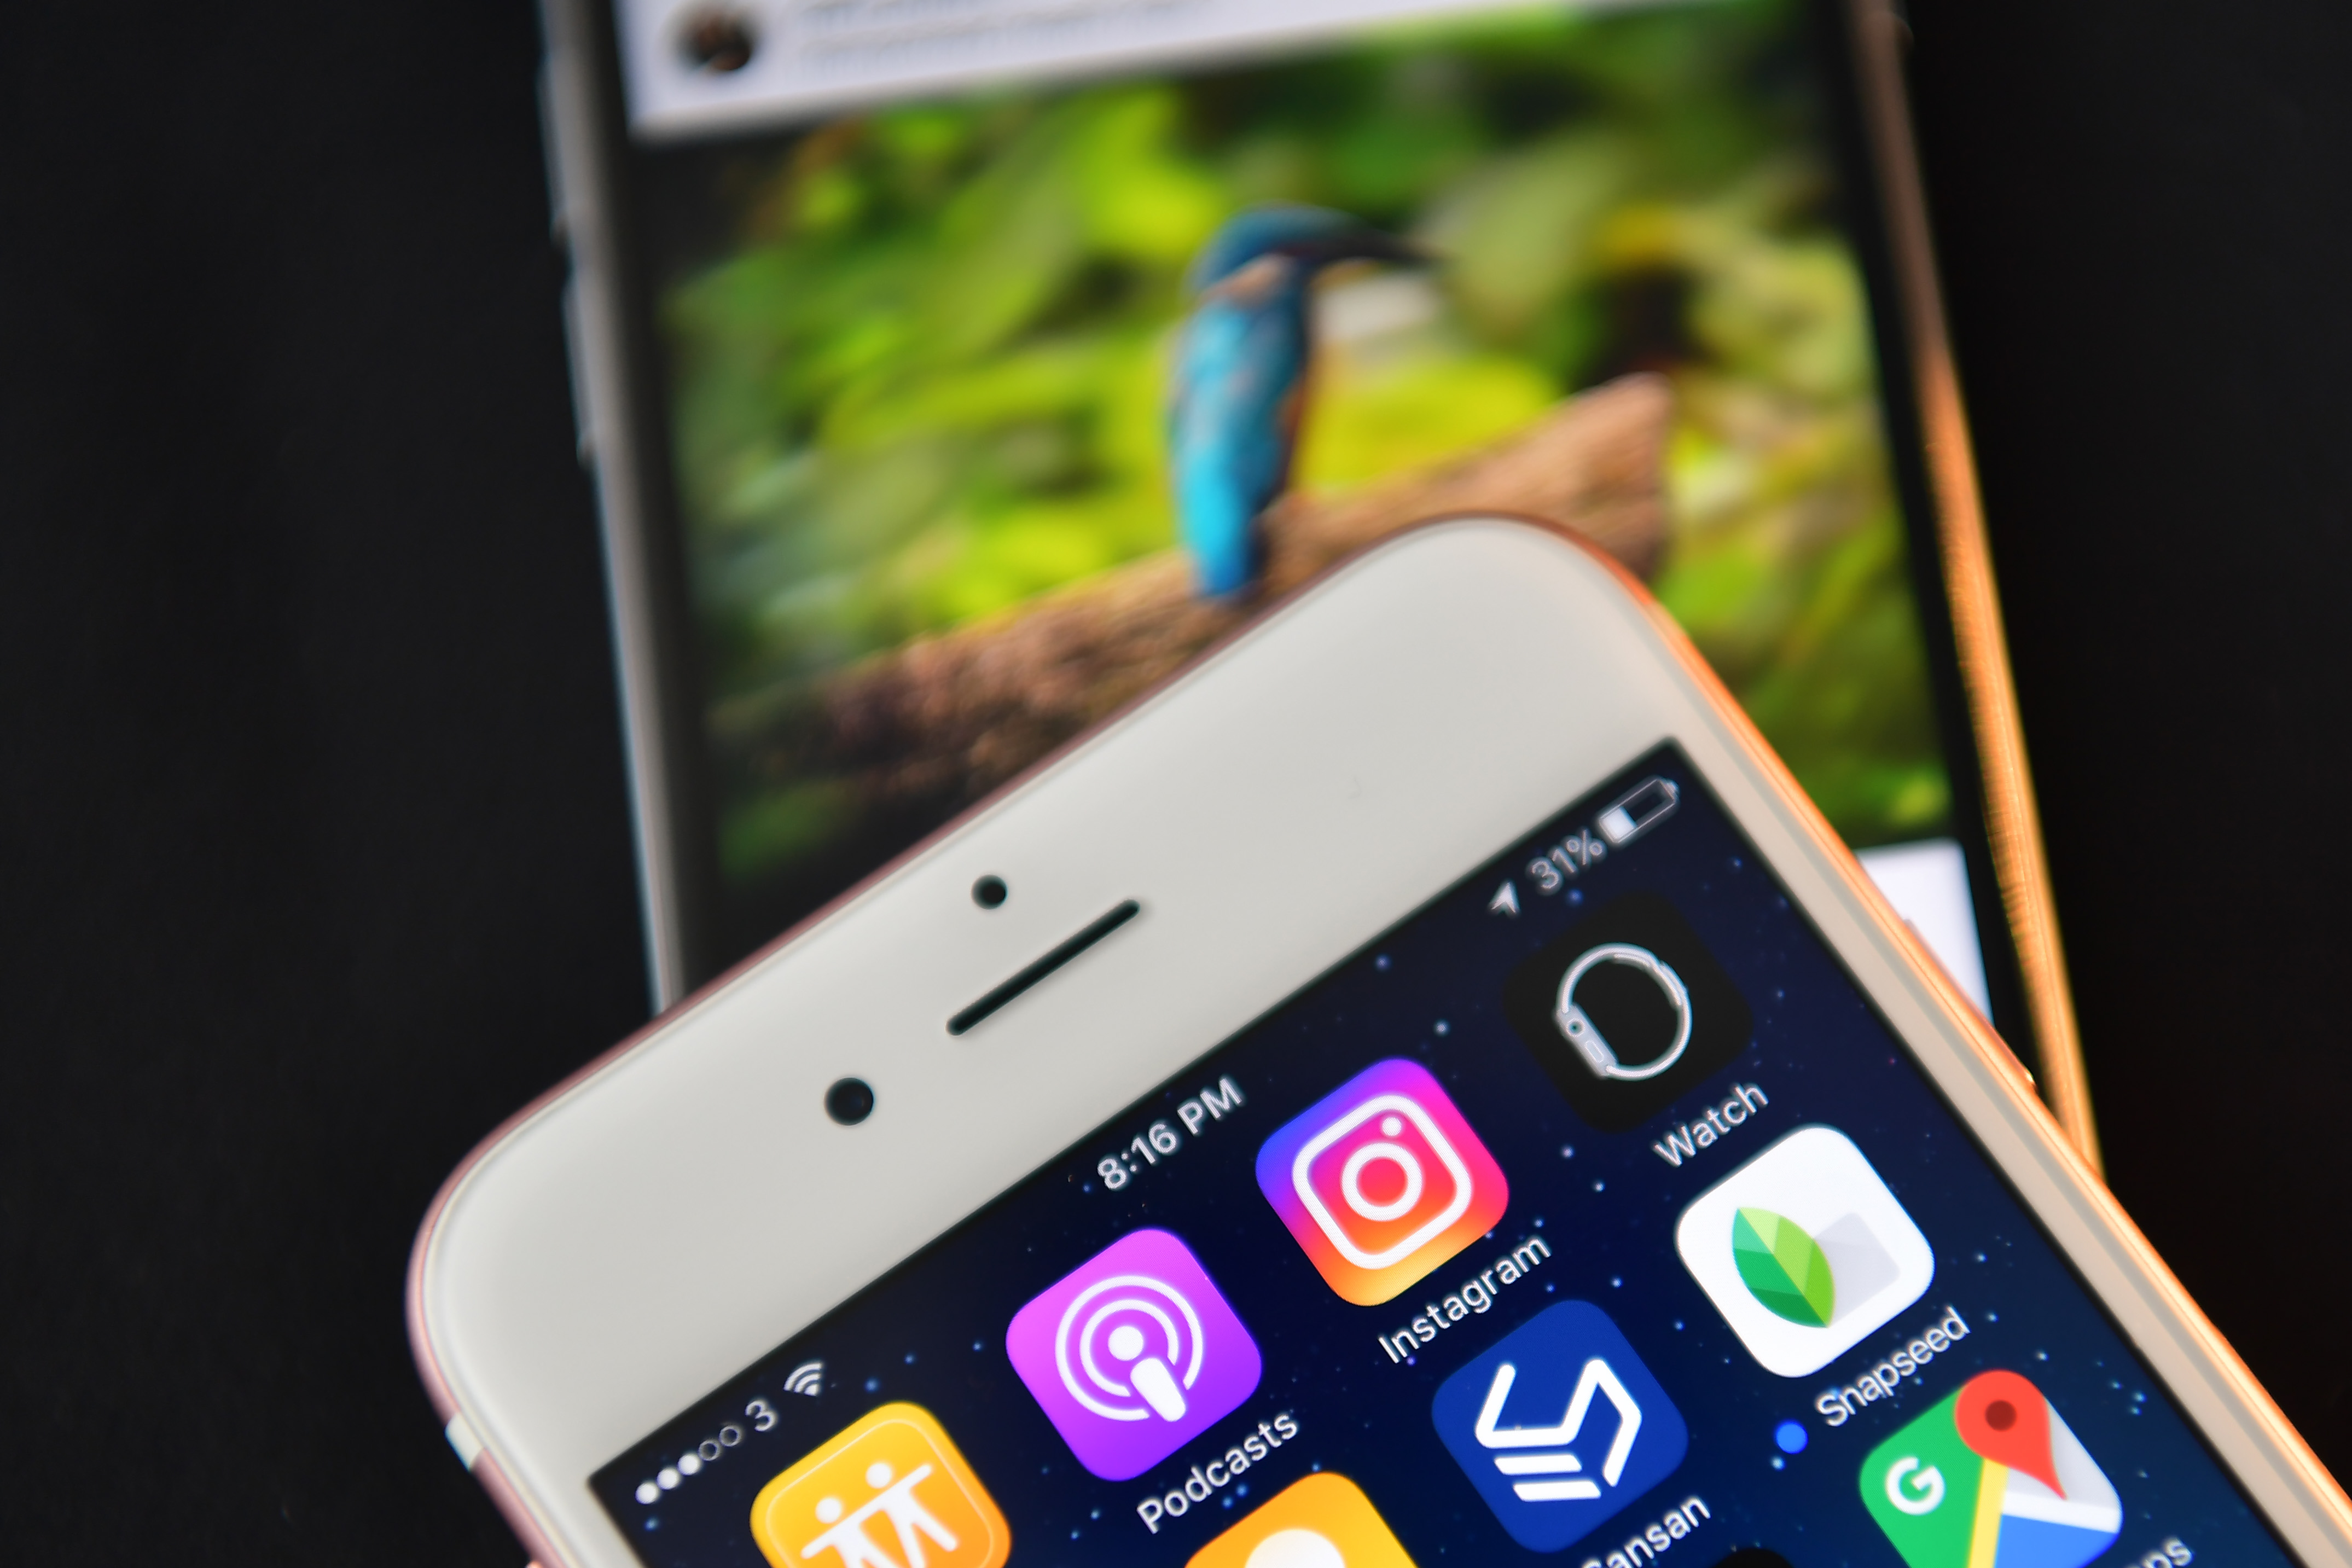 Instagram is going to show you even more ads